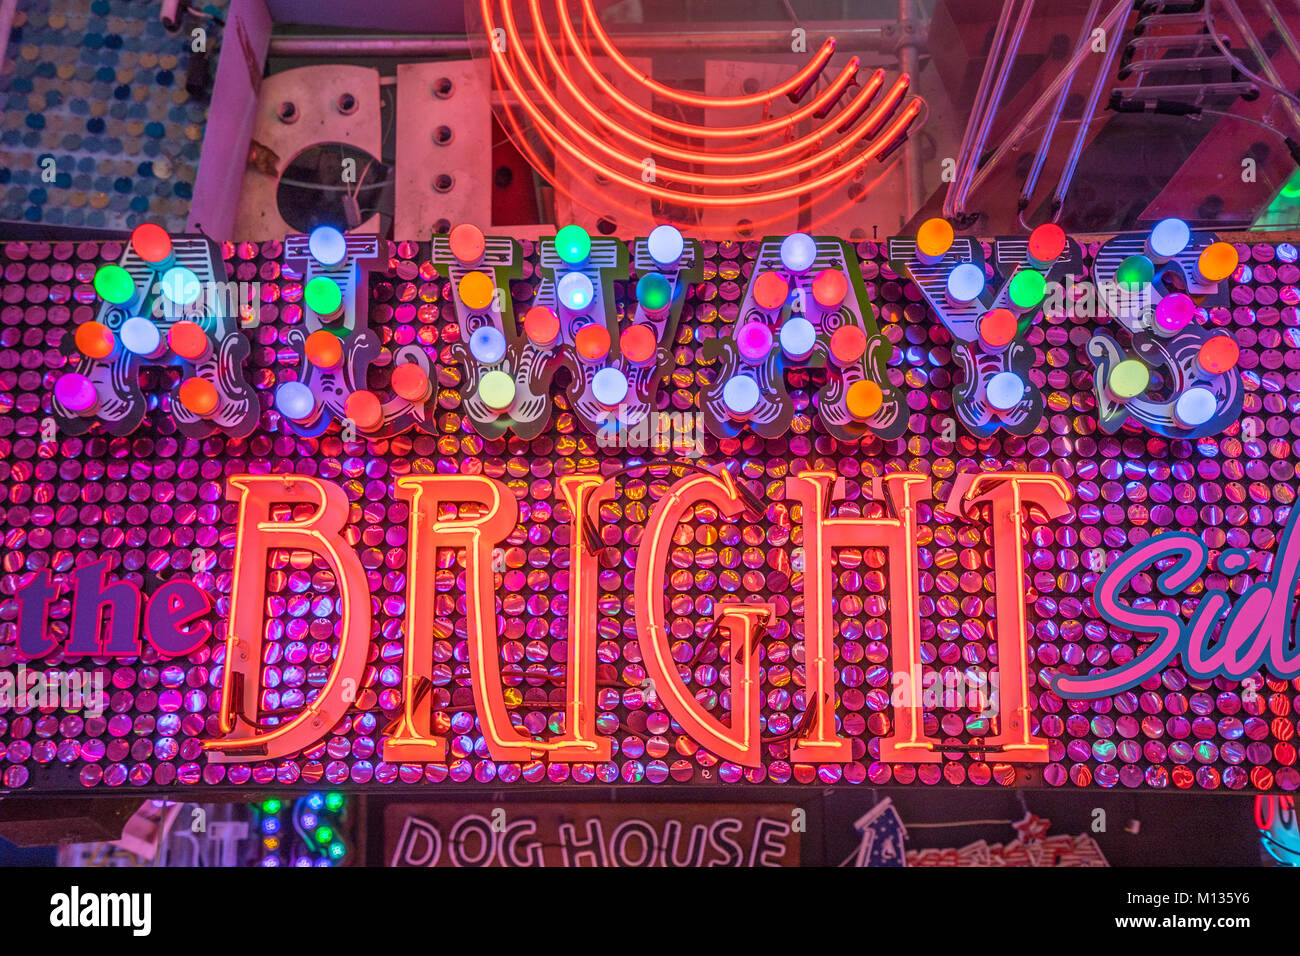 Neon signs available for hire from Gods Own Junkyard in Walthamstow, London. Photo date: Friday, January 26, 2018. - Stock Image